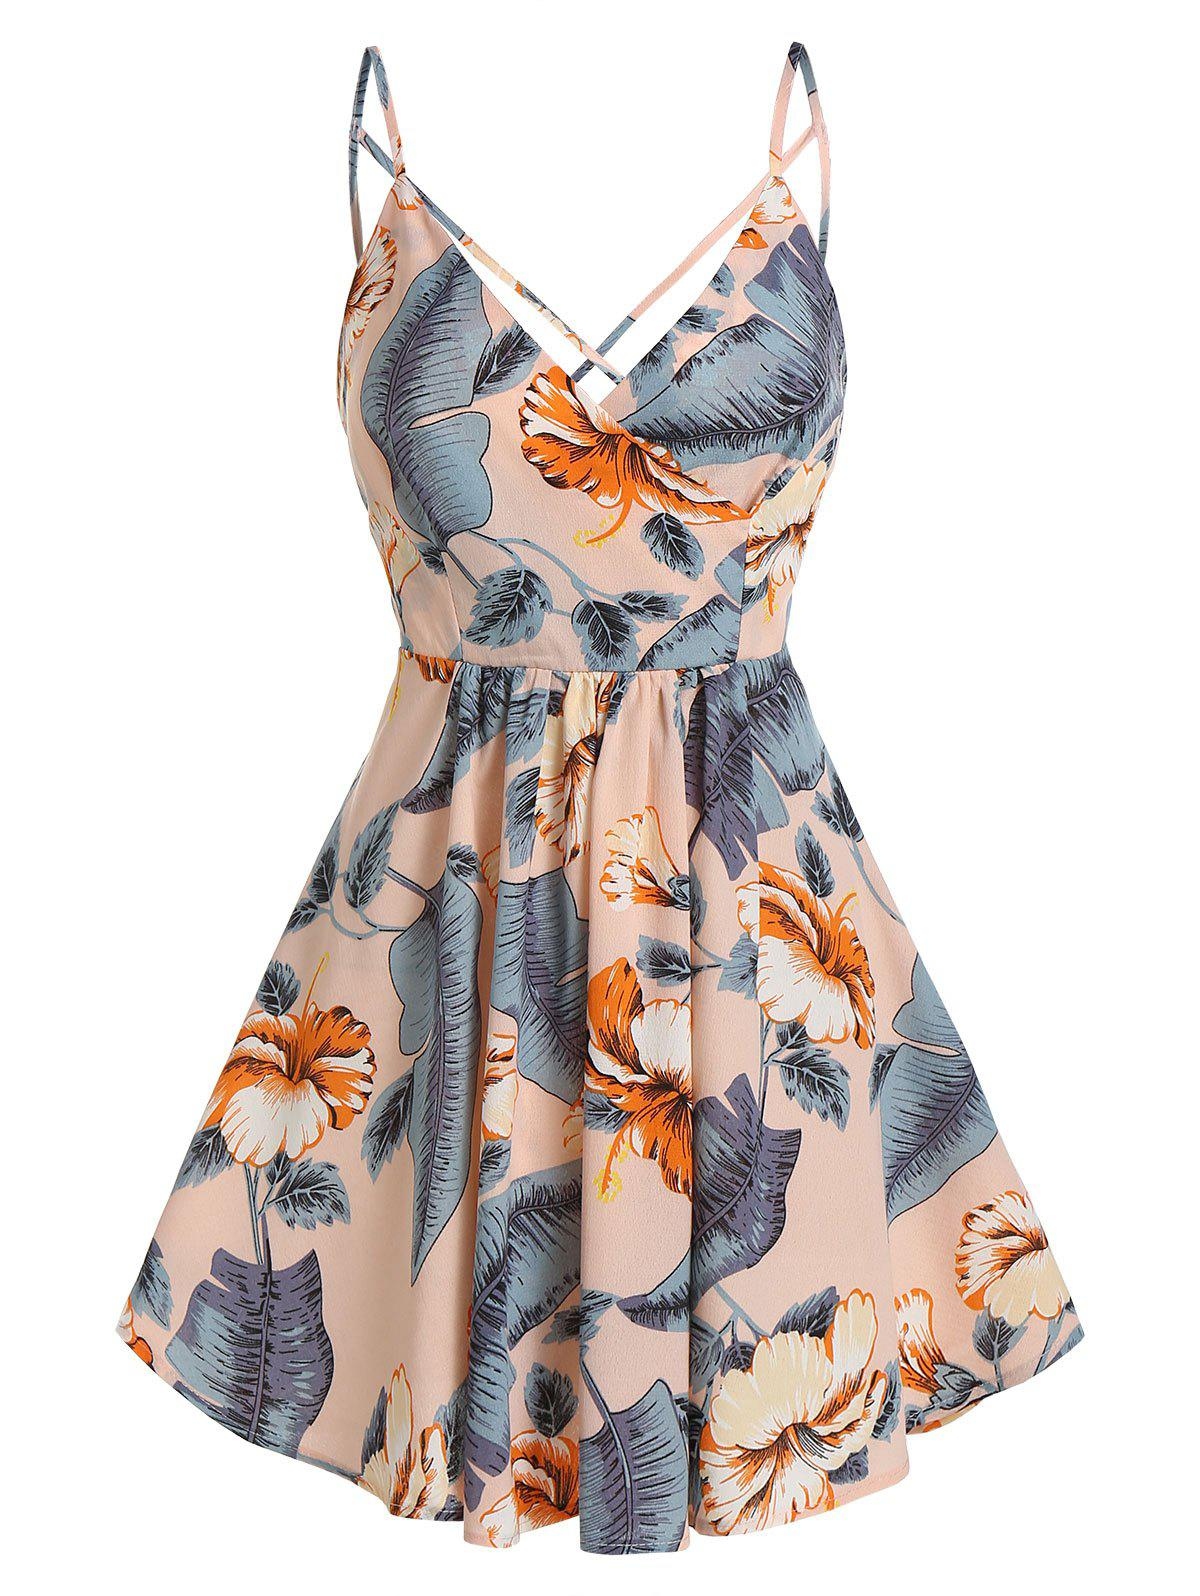 Chic Flower Palm Print Crisscross Back Slip Dress